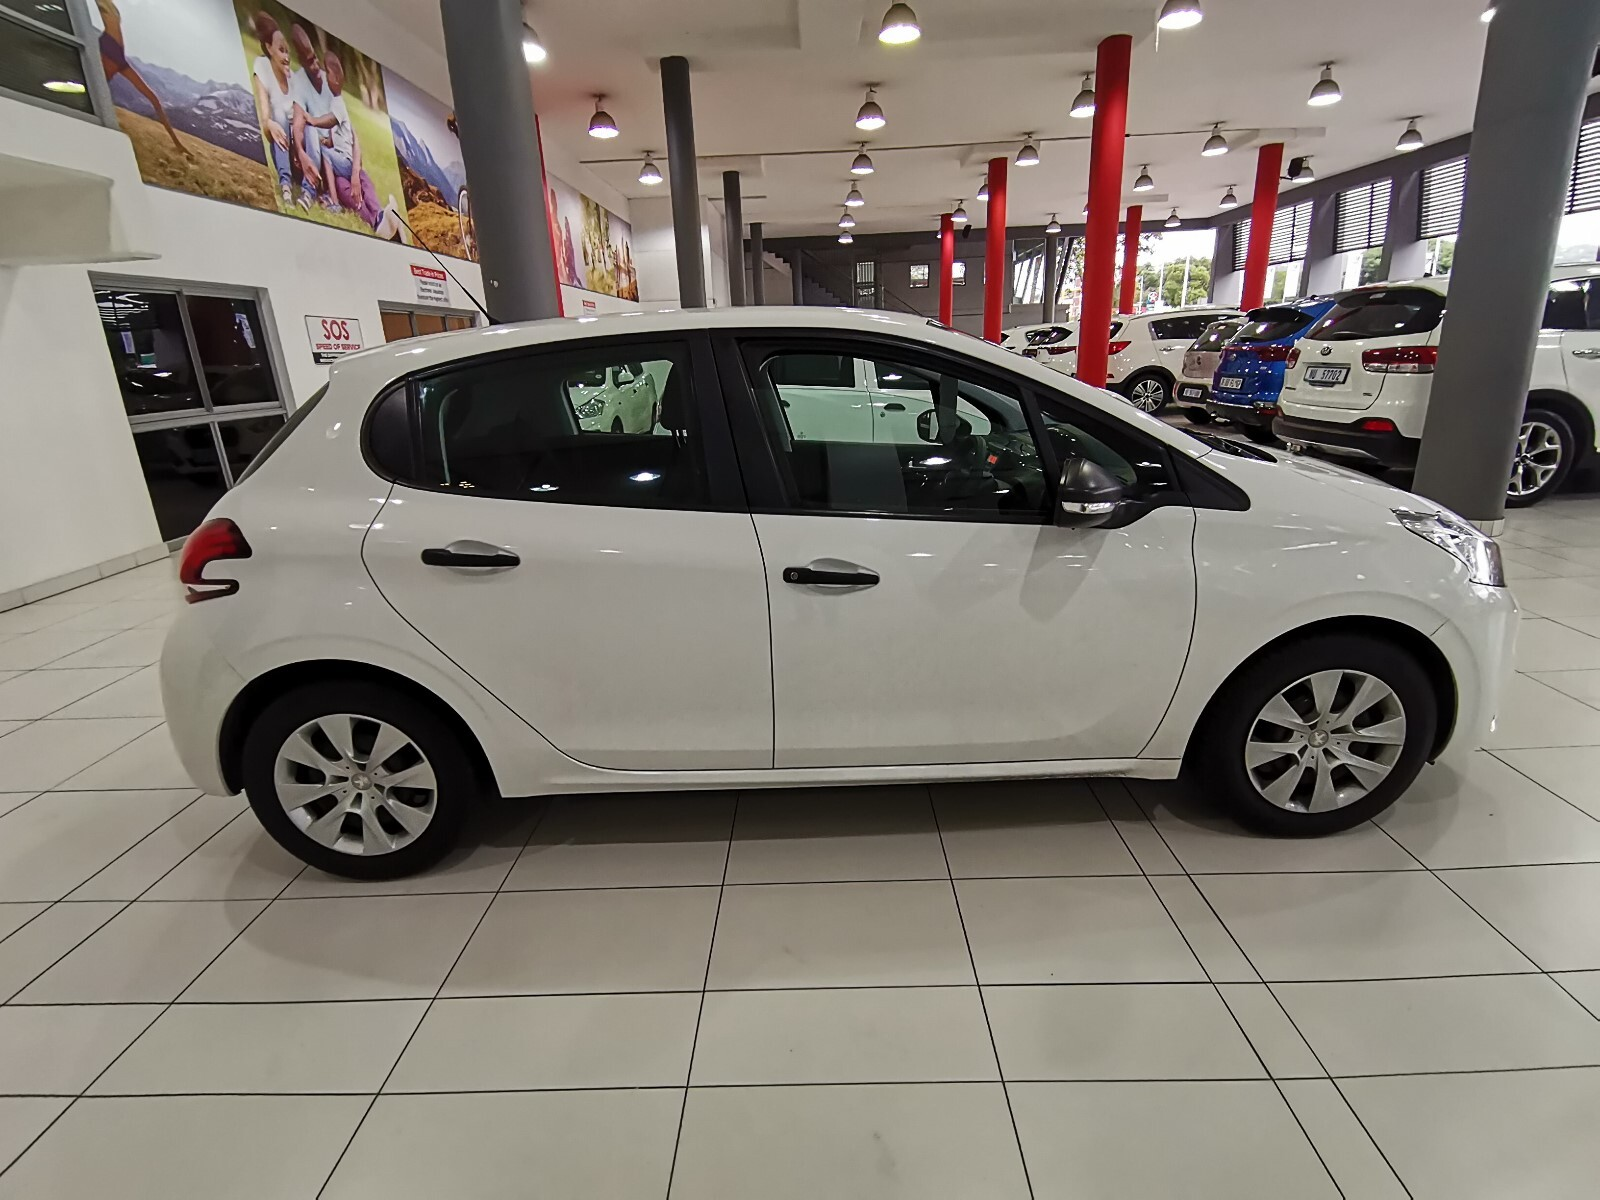 PEUGEOT POP ART 1.0 PURETECH 5DR Pinetown 4334224